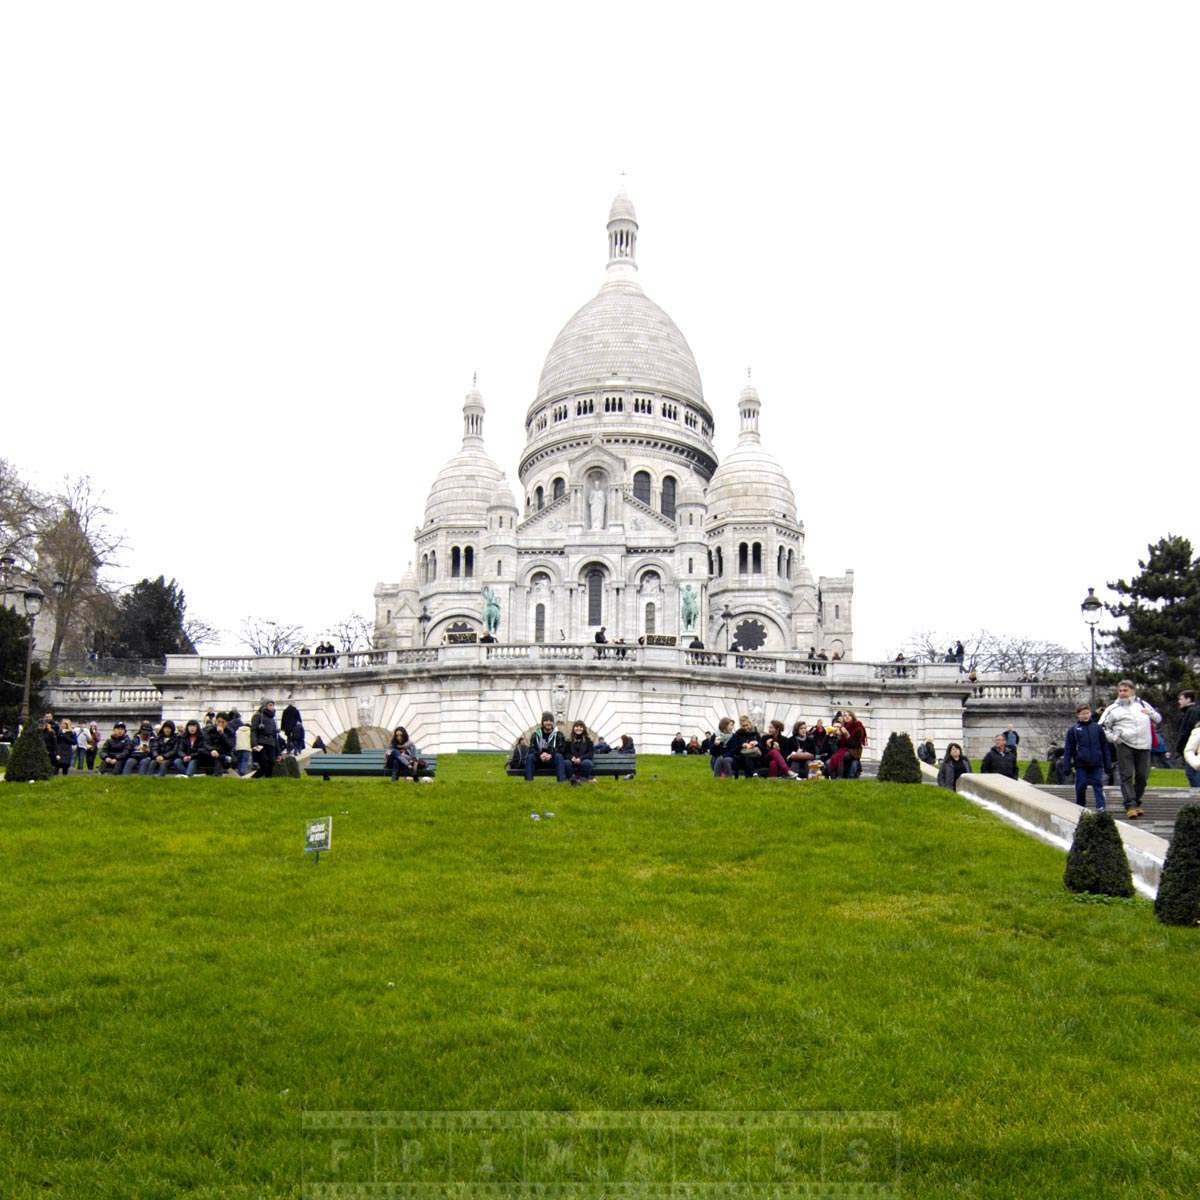 Sacre Coeur basilica - famous landmark in Montmartre, Paris, France